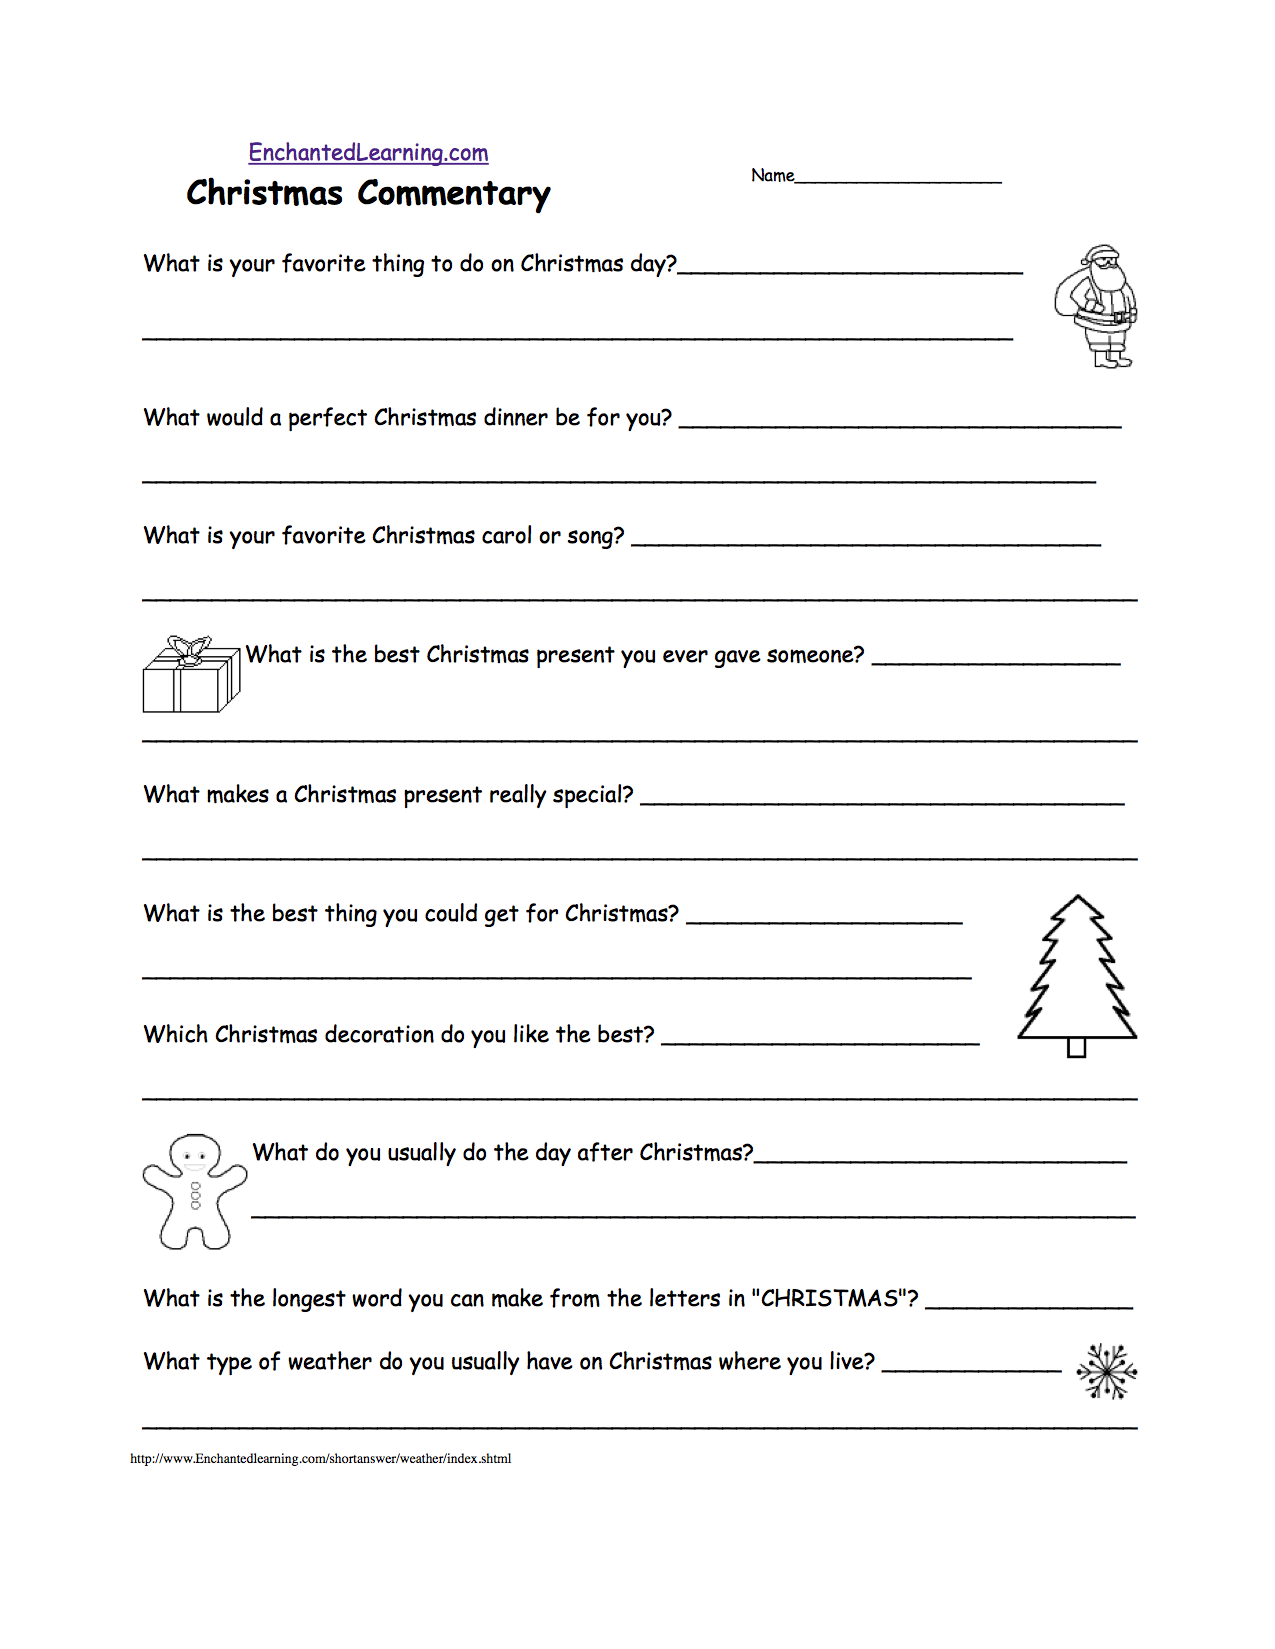 A Christmas Carol Quiz Questions And Answers.Short Answer Quizzes Printable Enchantedlearning Com